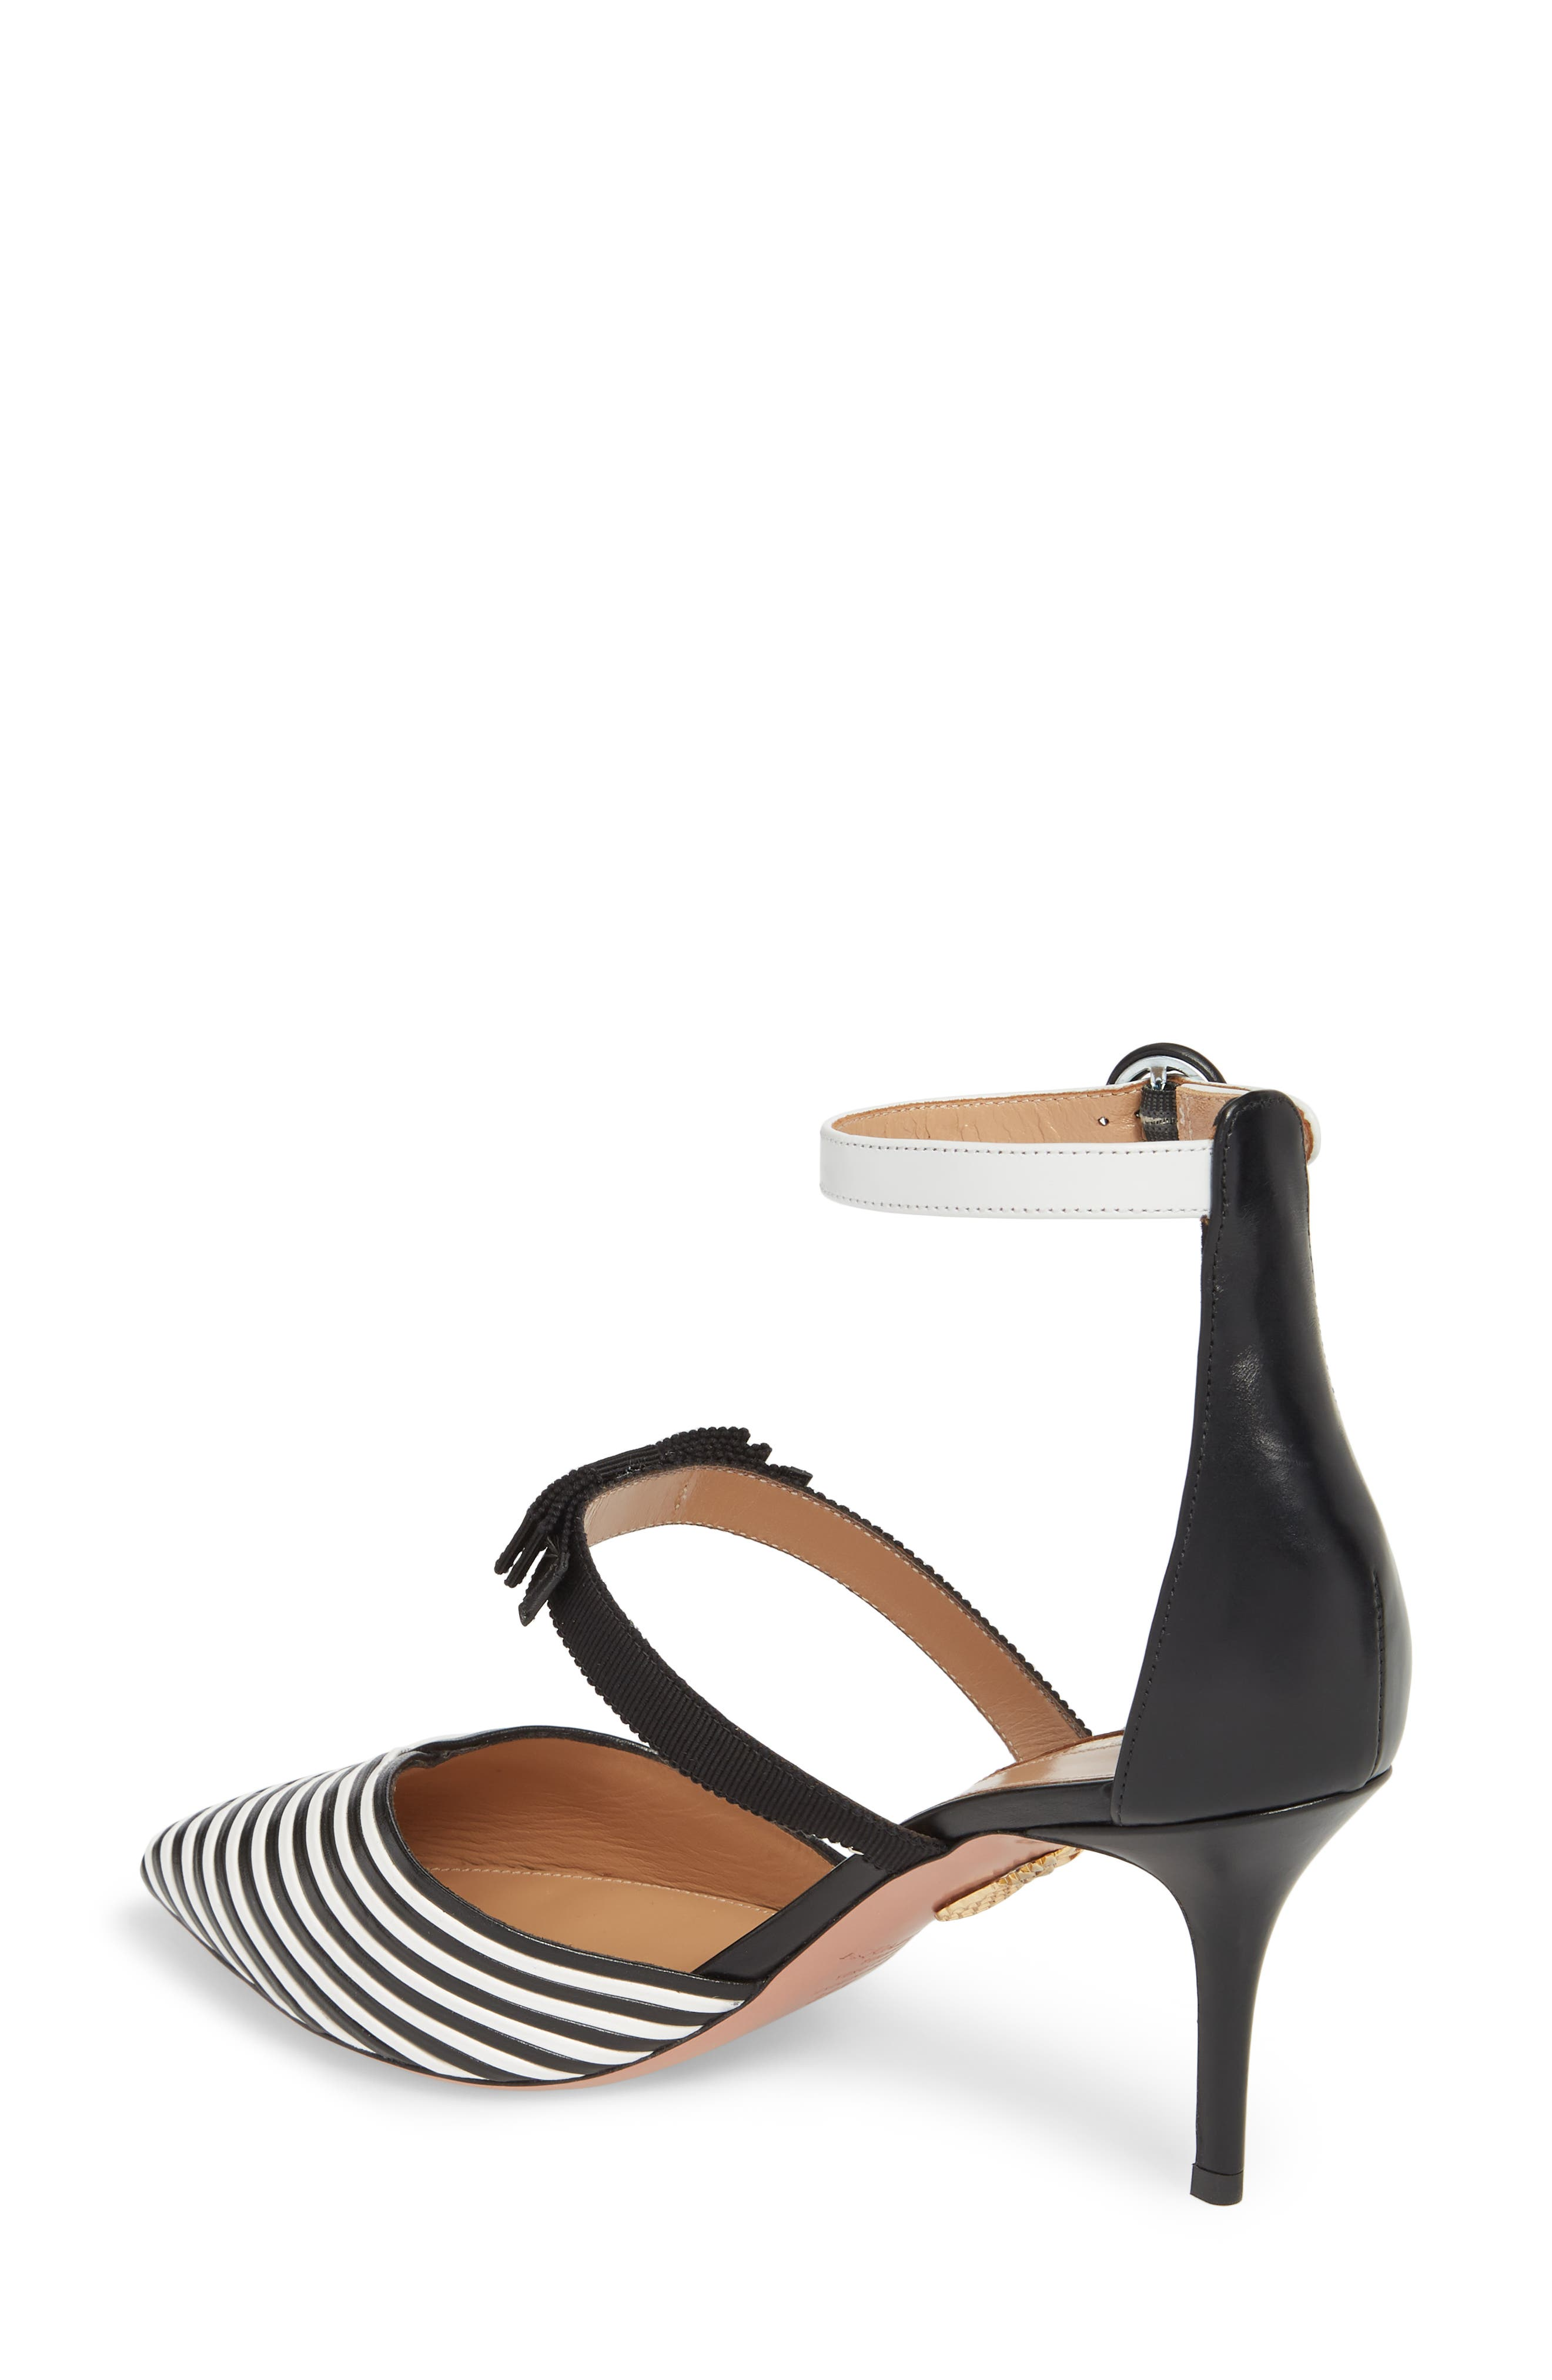 Very Downtown Ankle Strap Pump,                             Alternate thumbnail 2, color,                             001